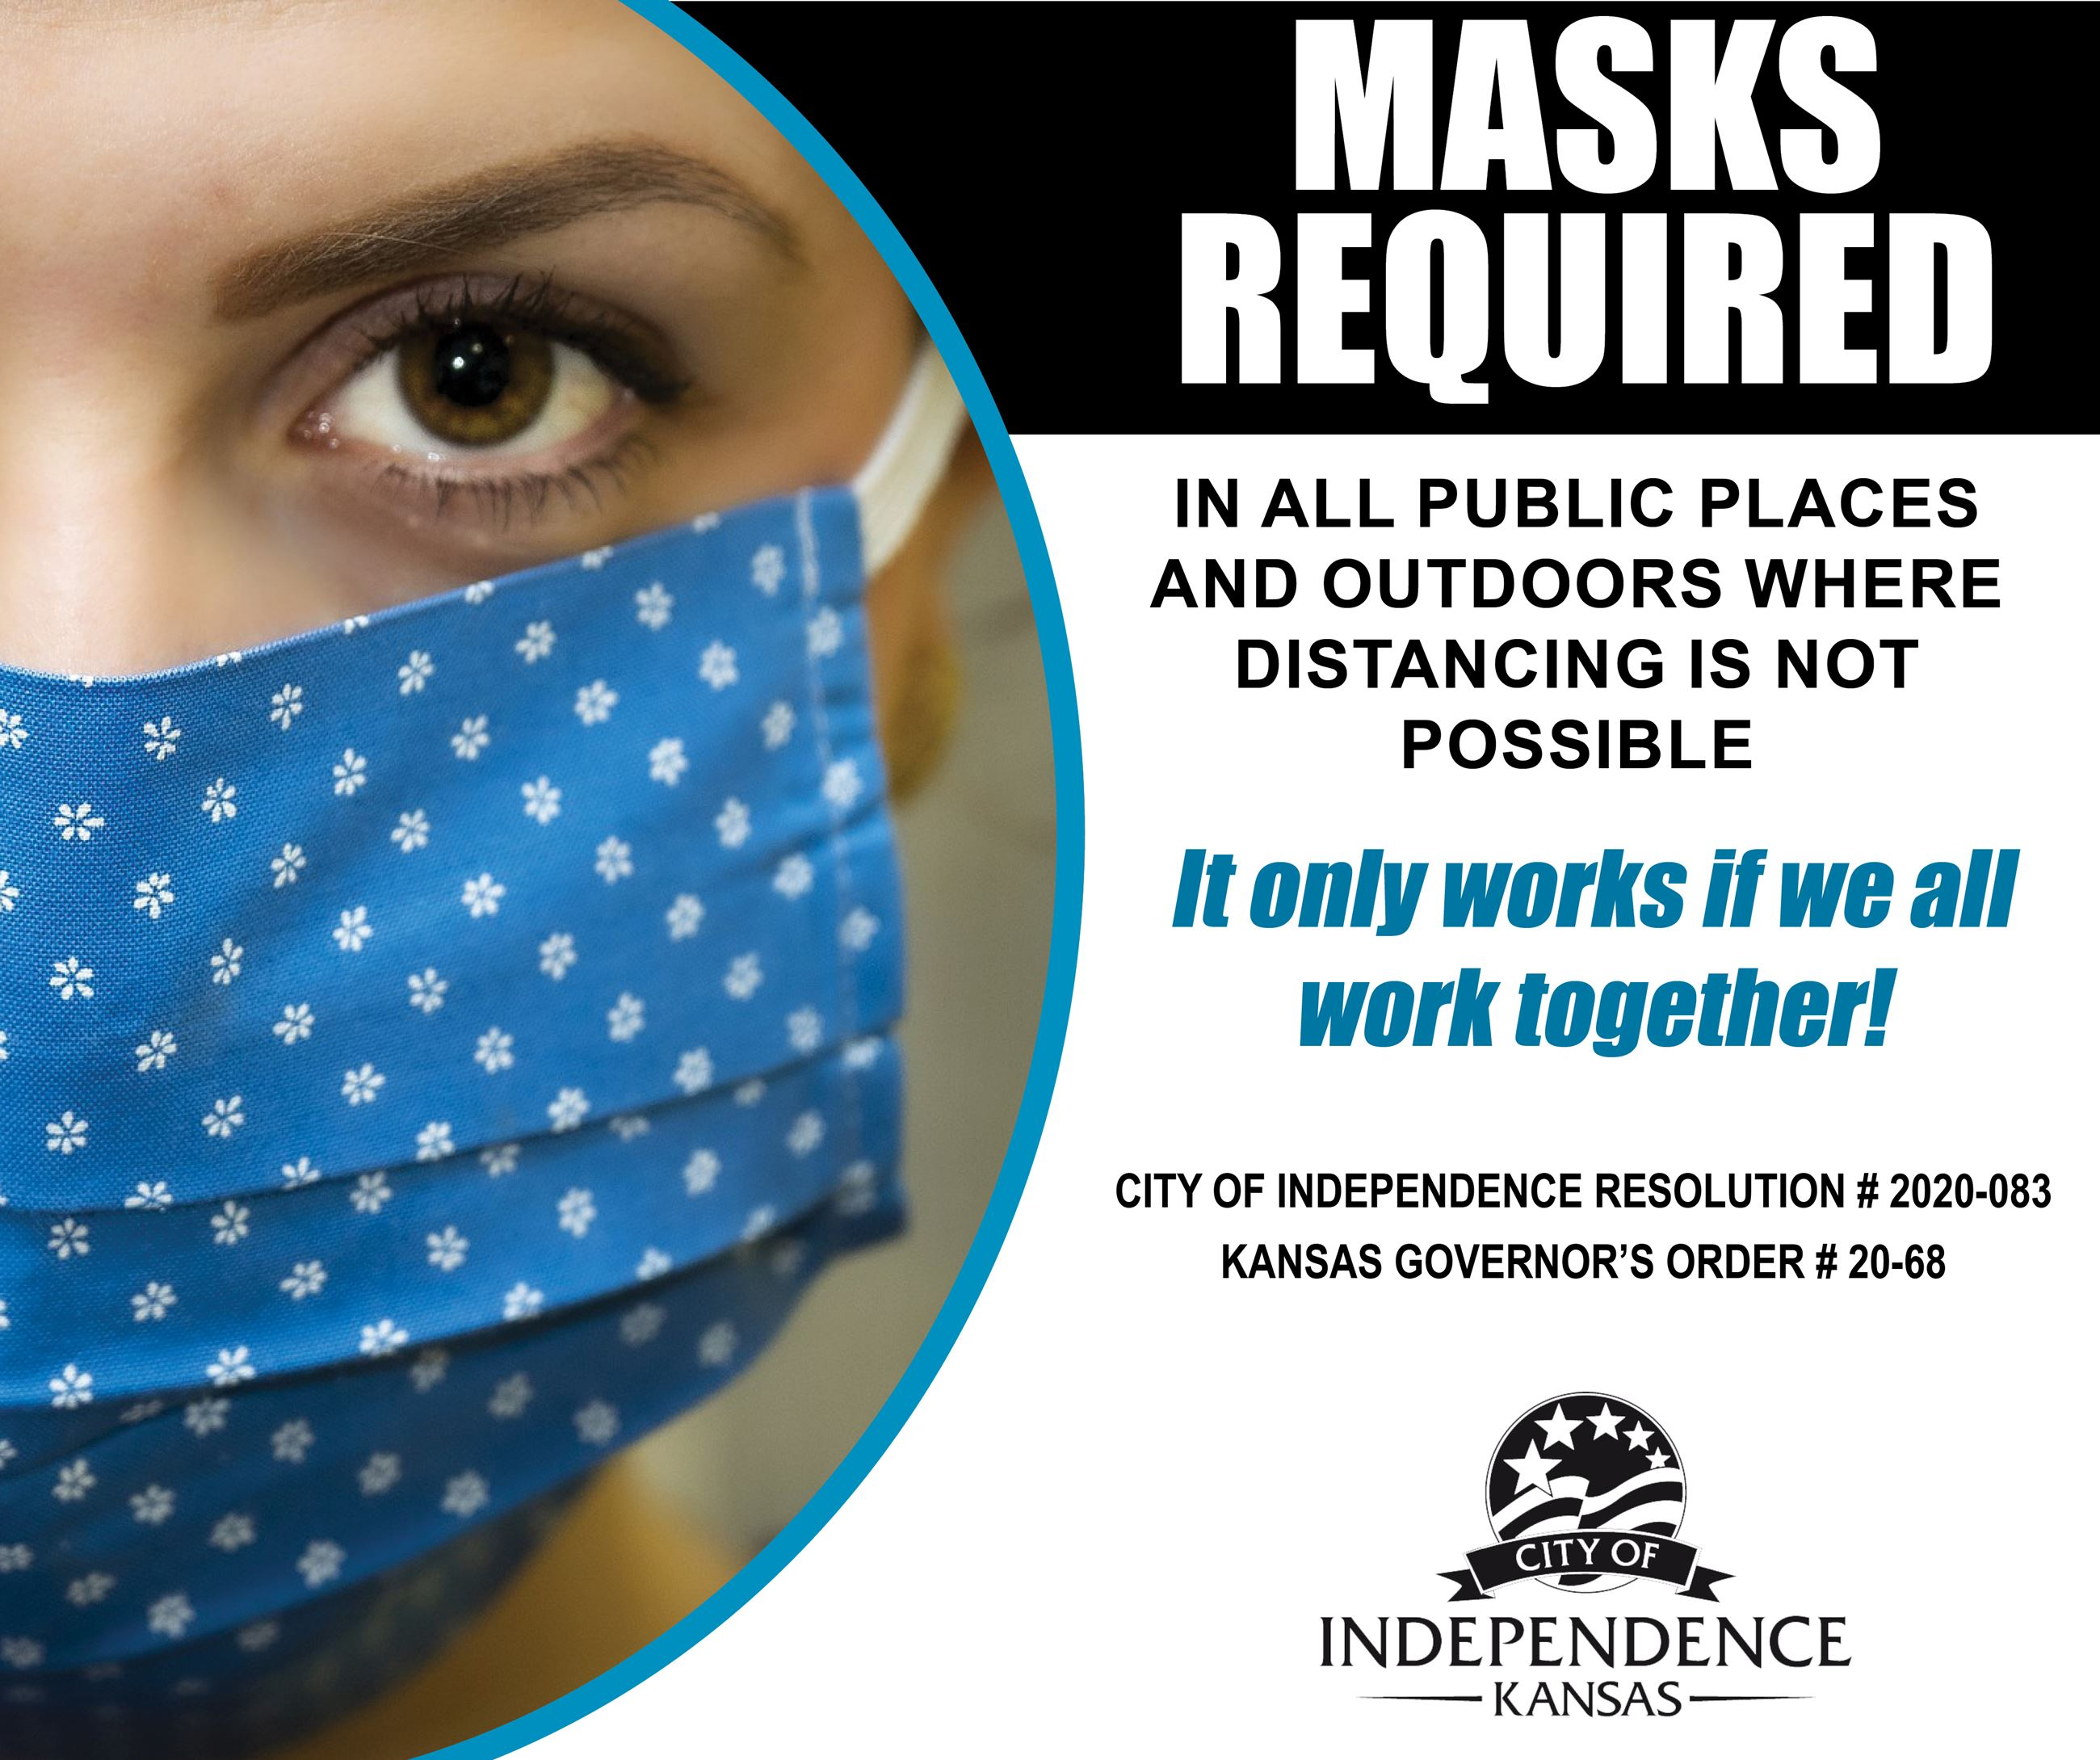 City of Indy Masks Required FB Graphic 11.20.2020